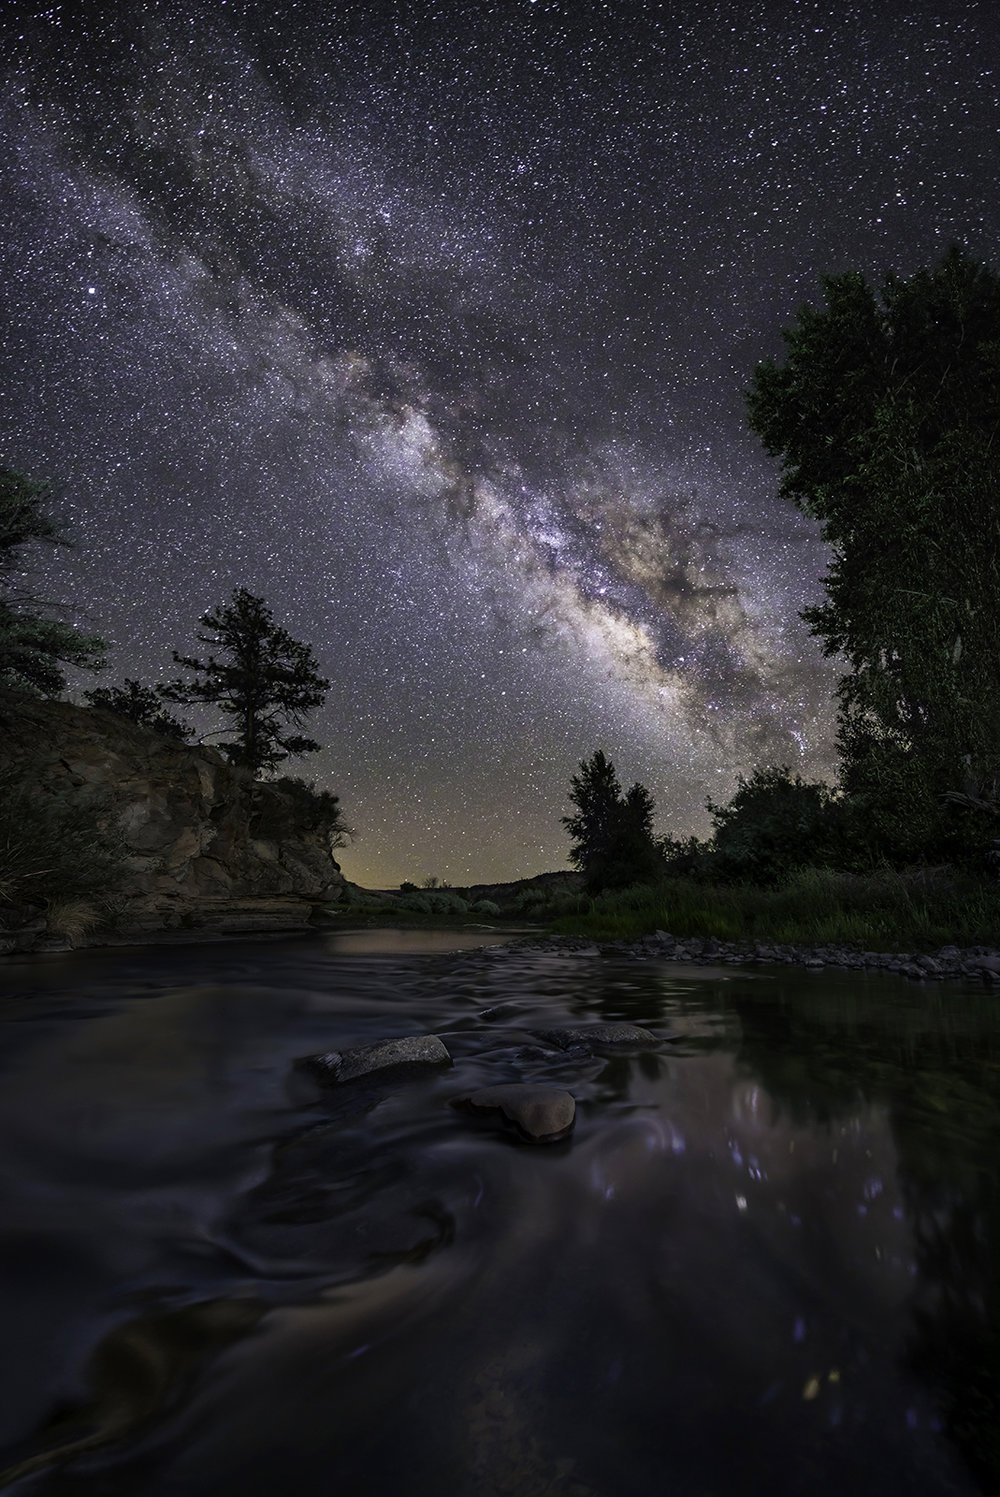 Milky Way Over The Gila River downsized for Andy.jpg